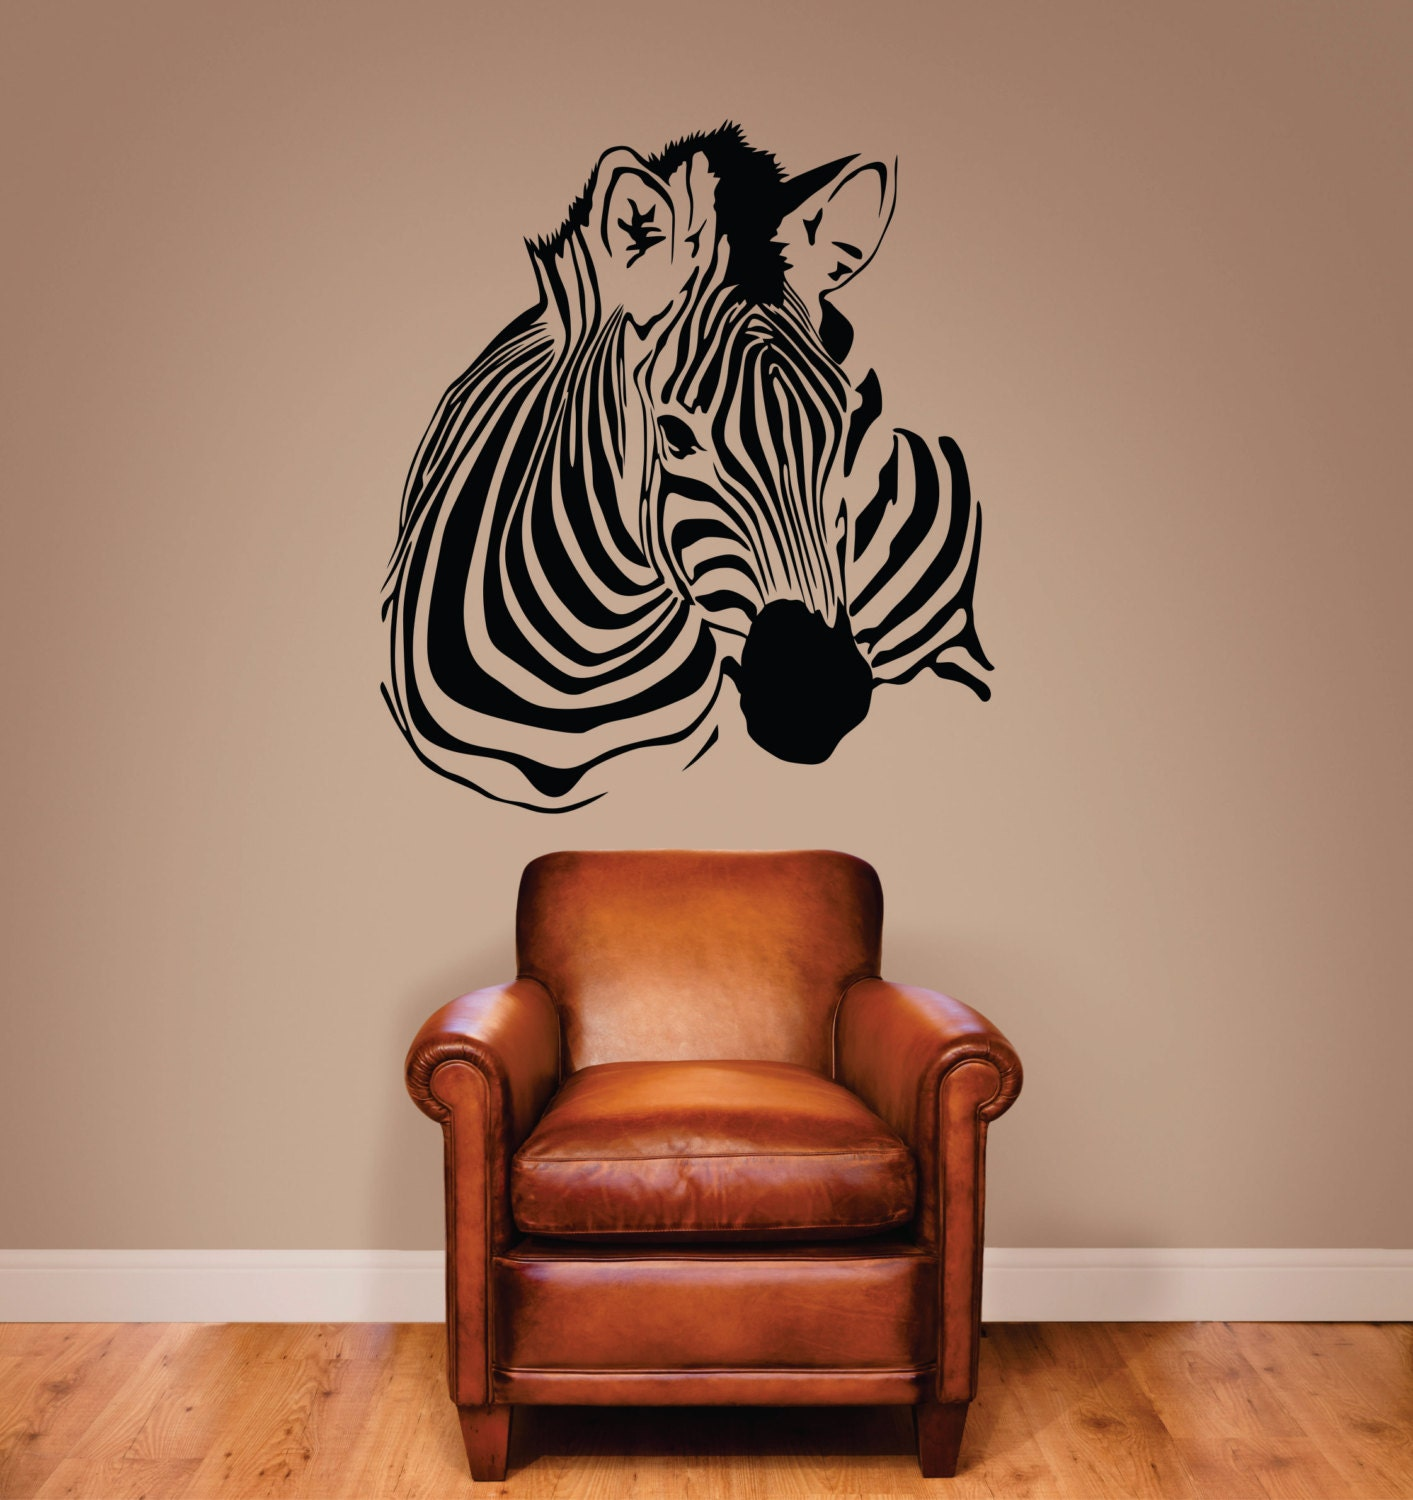 Zebra Wall Decal Zebra Stripe Decal Zebra Decor Zebra Art